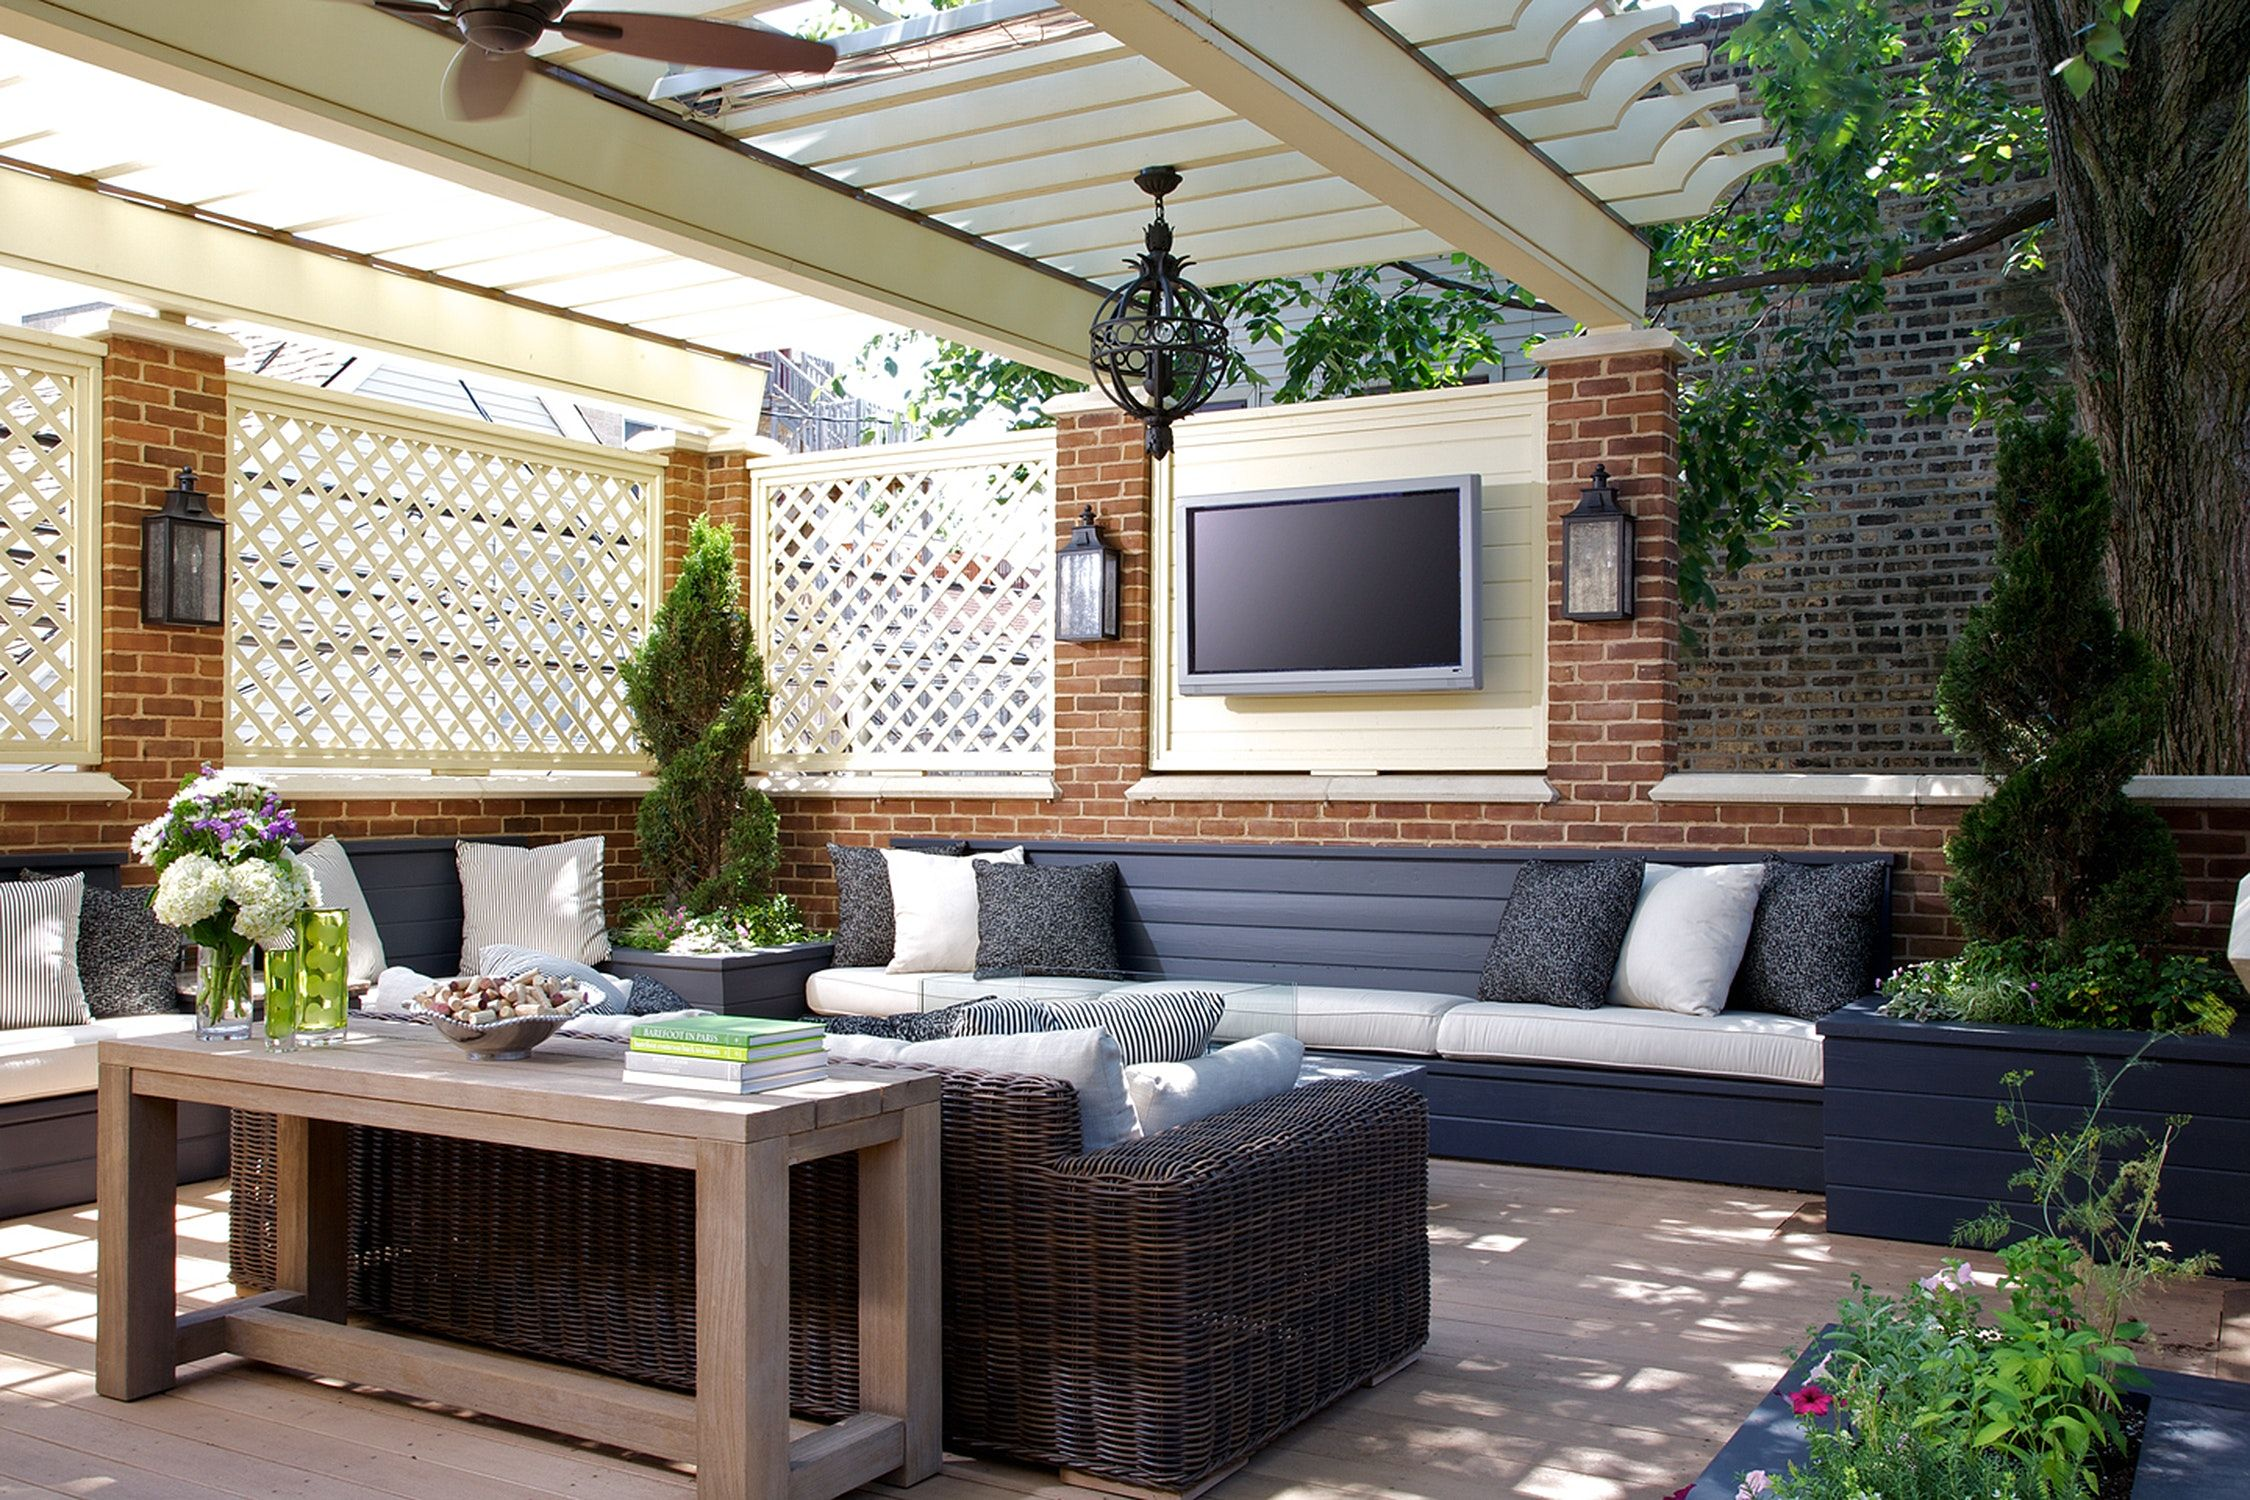 Private Rooftop Terrace with Sitting Area (With images